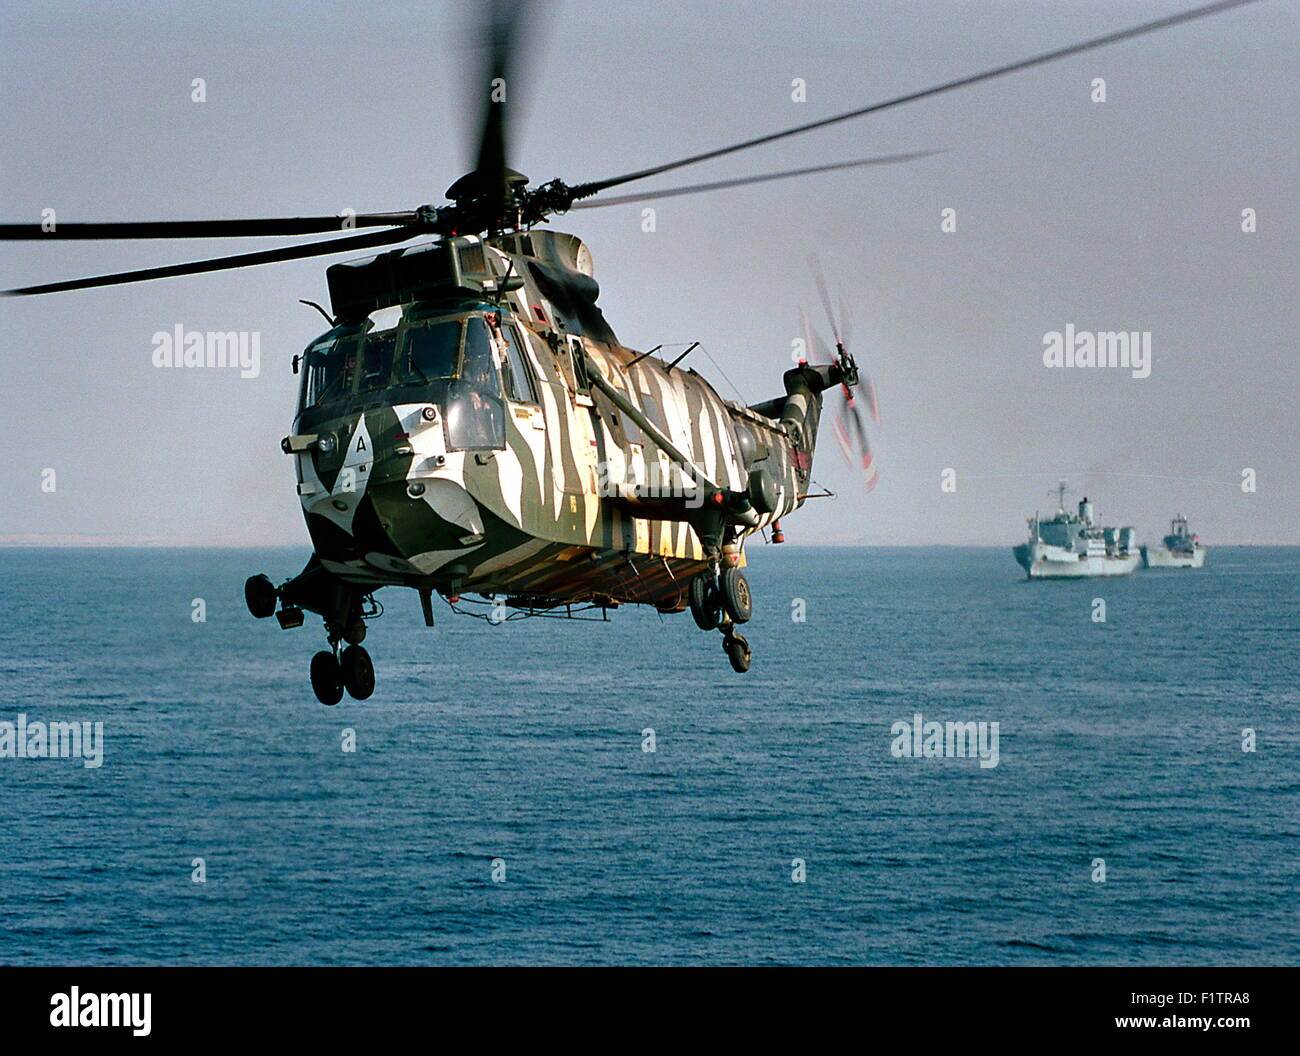 AJAX NEWS & FEATURE SERVICE. (OMA-42).6 OCT 2001.OMAN. A ROYAL NAVAL SEA KING HELICOPTER LIFTS OFF FROM HMS - Stock Image